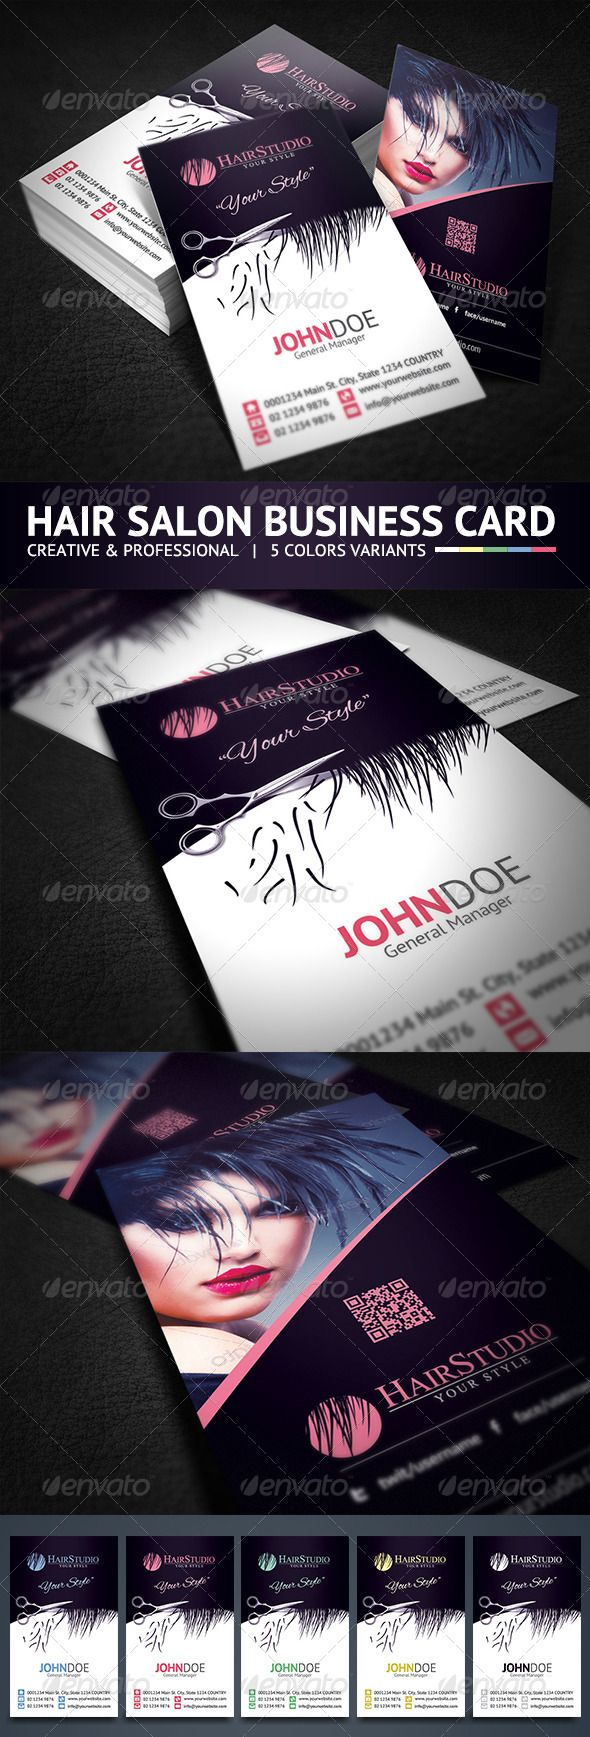 14 best images about hairdresser business cards on pinterest creative hair salon business card magicingreecefo Image collections